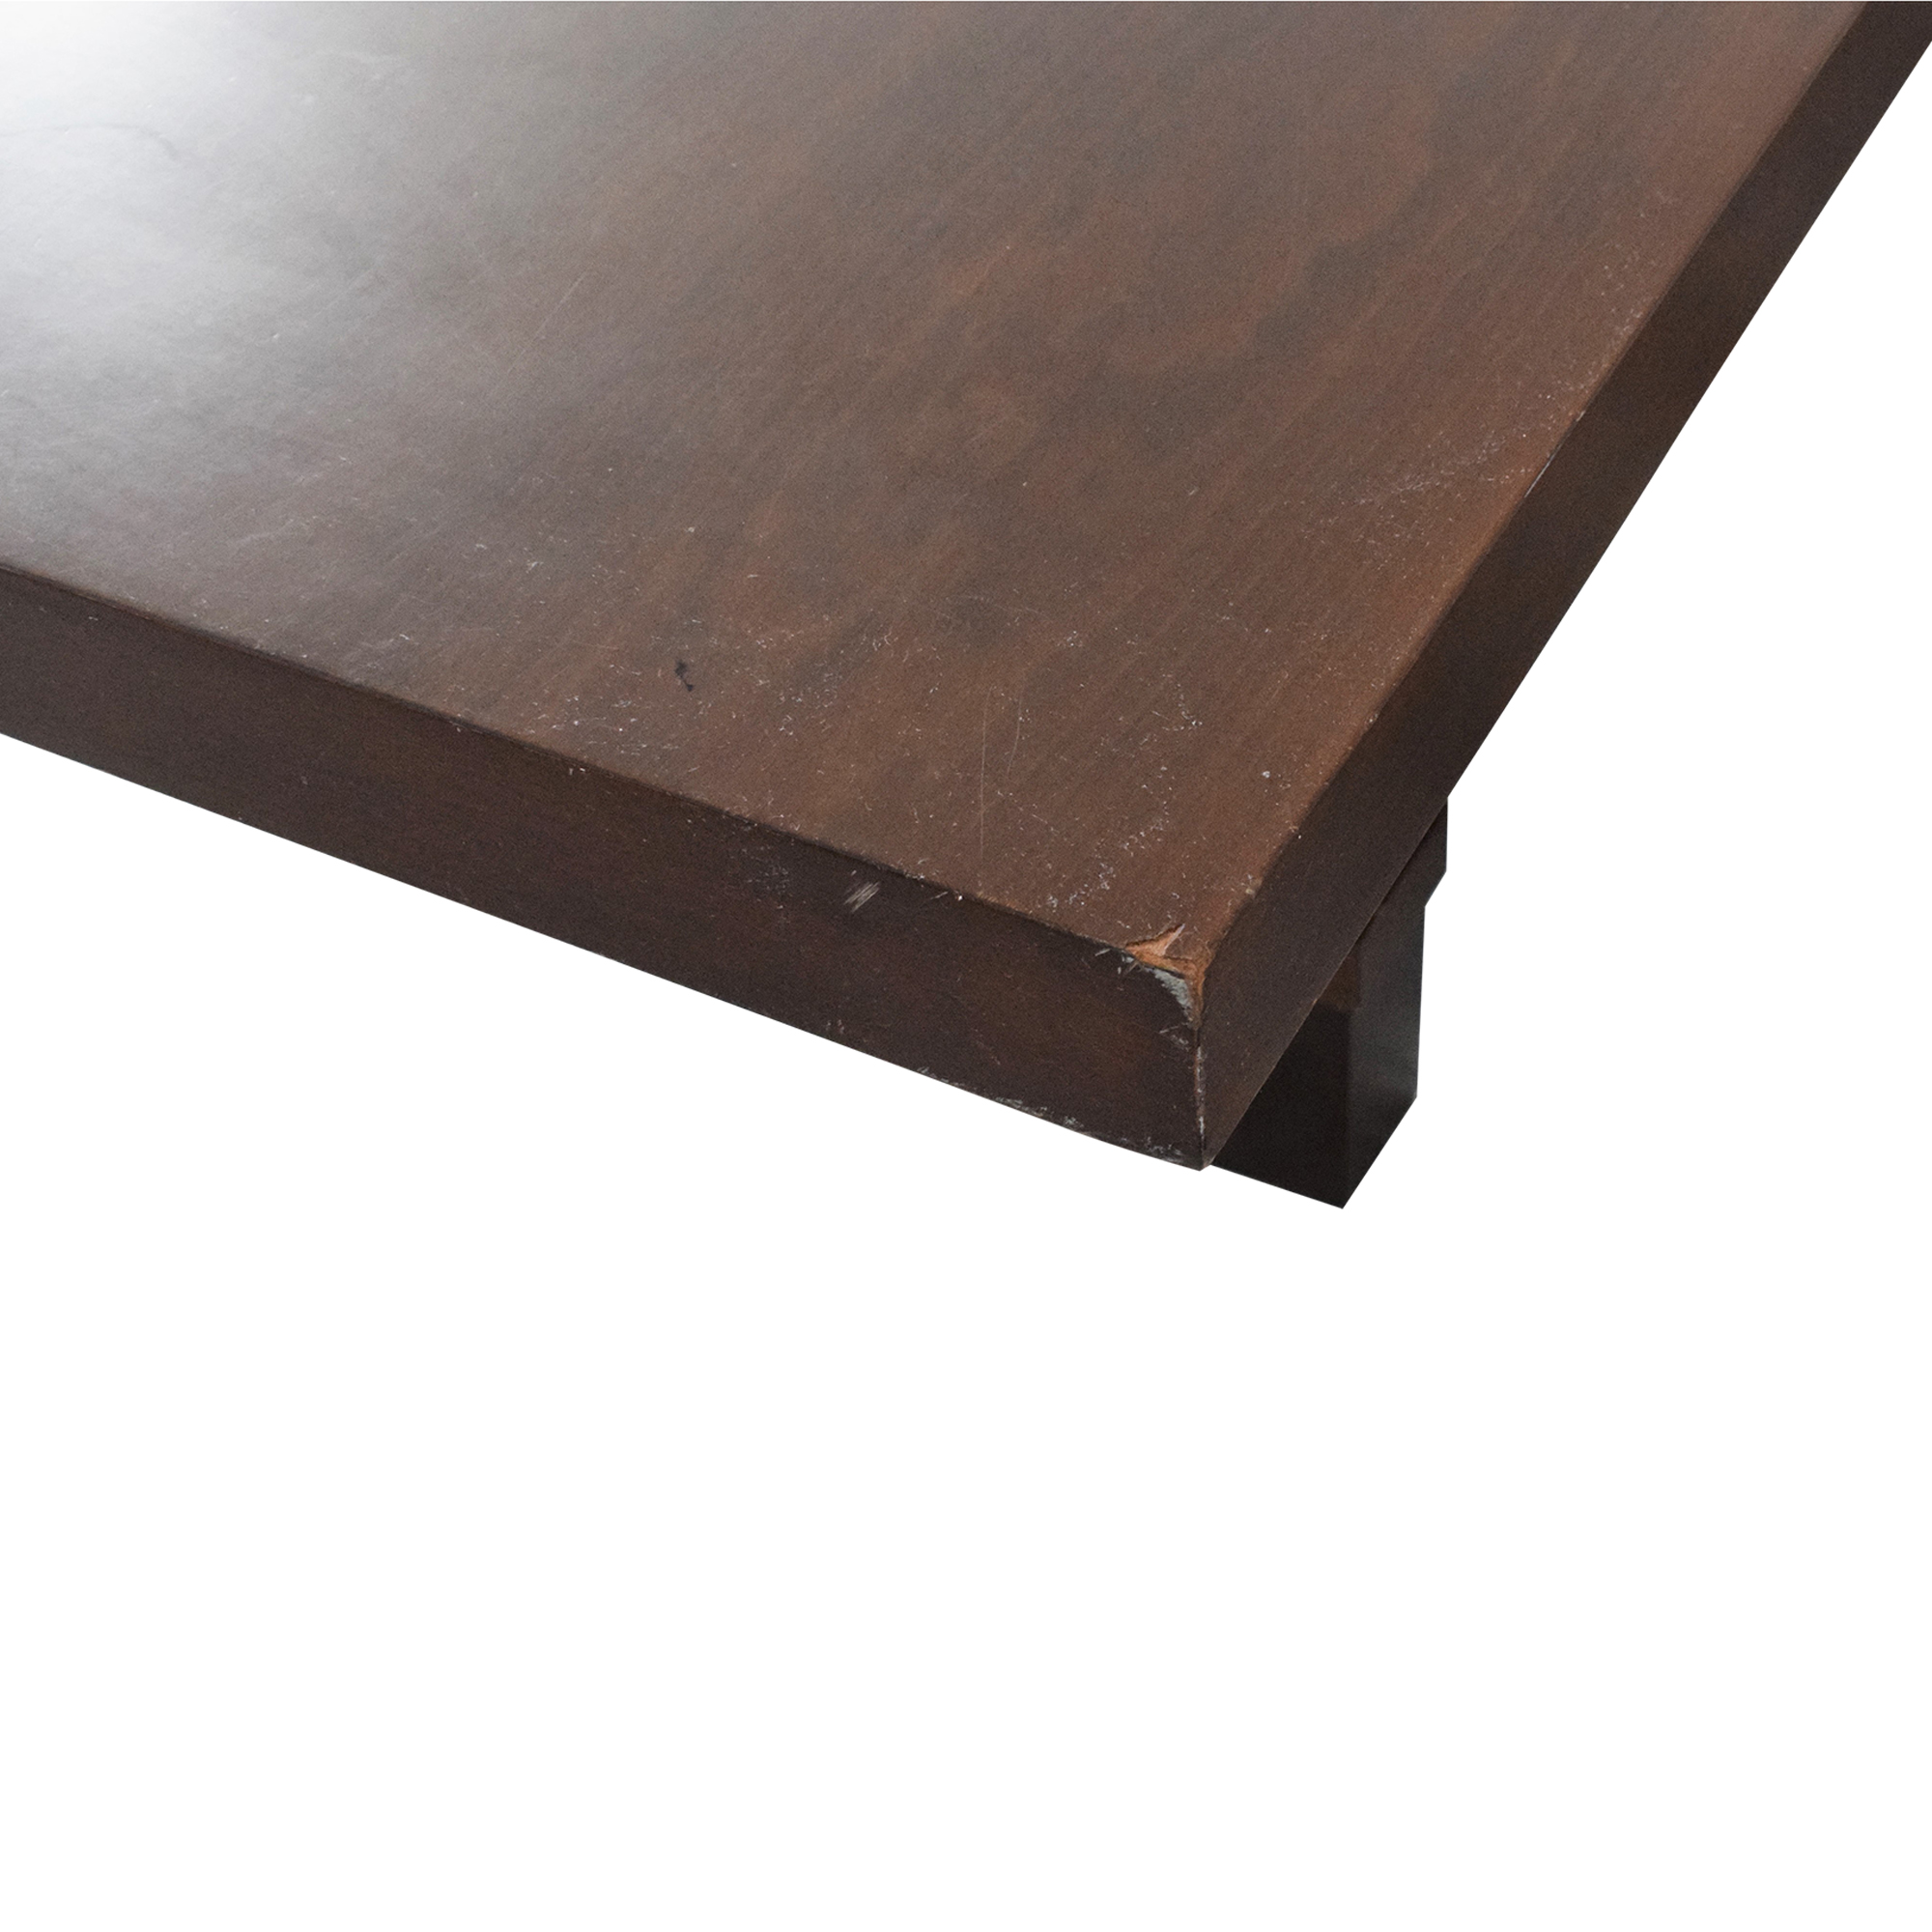 Cassina Cassina Frank Lloyd Wright Taliesin Dining Table dimensions